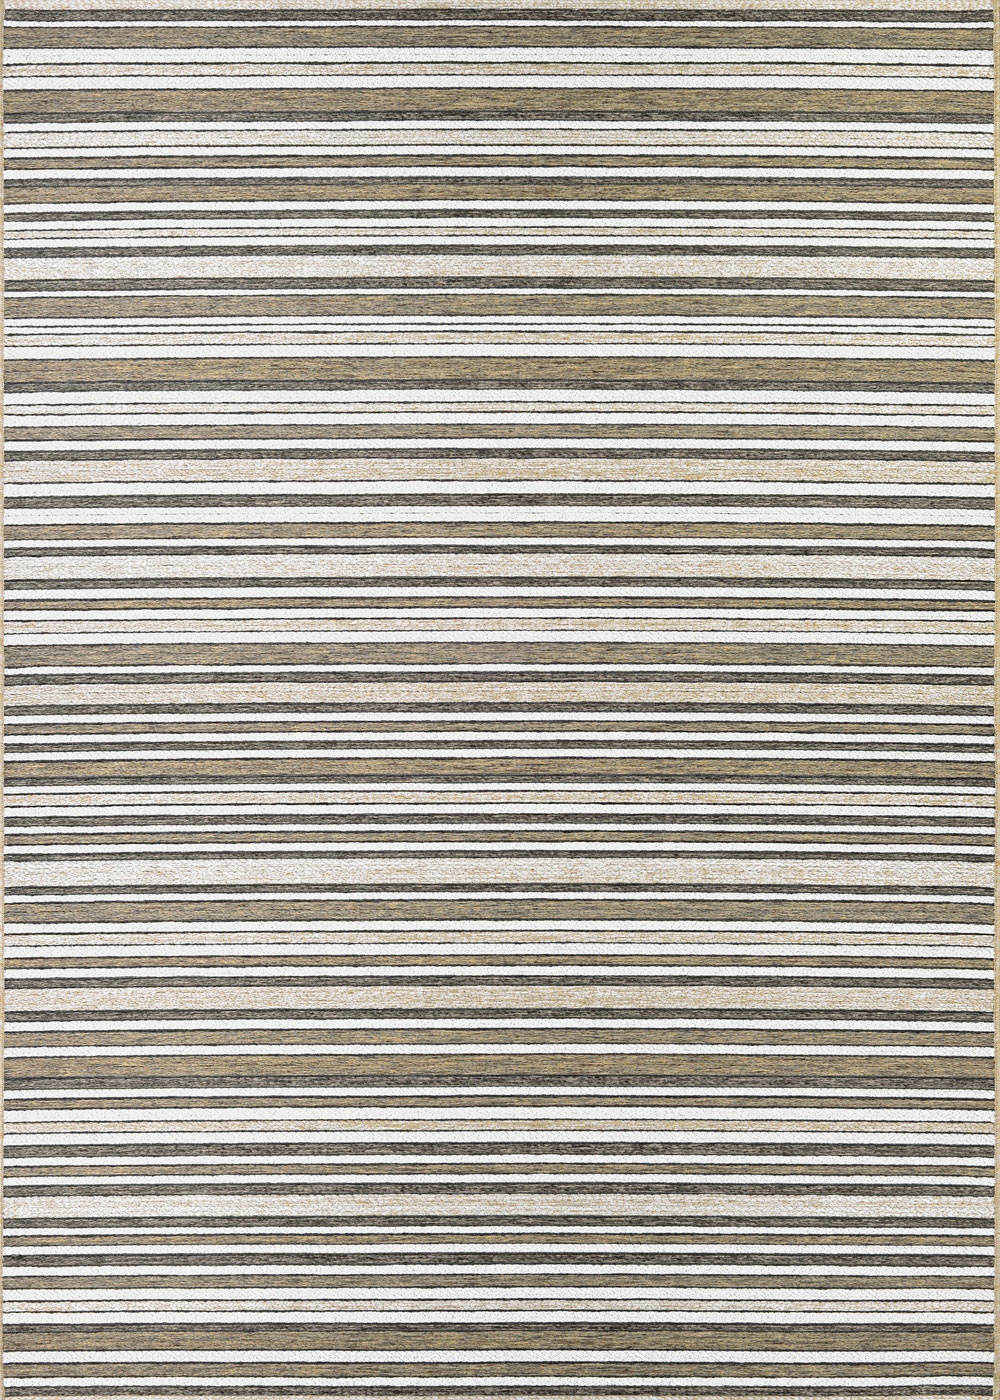 Couristan CAPE BROCKTON LIGHT BROWN/IVORY Rug